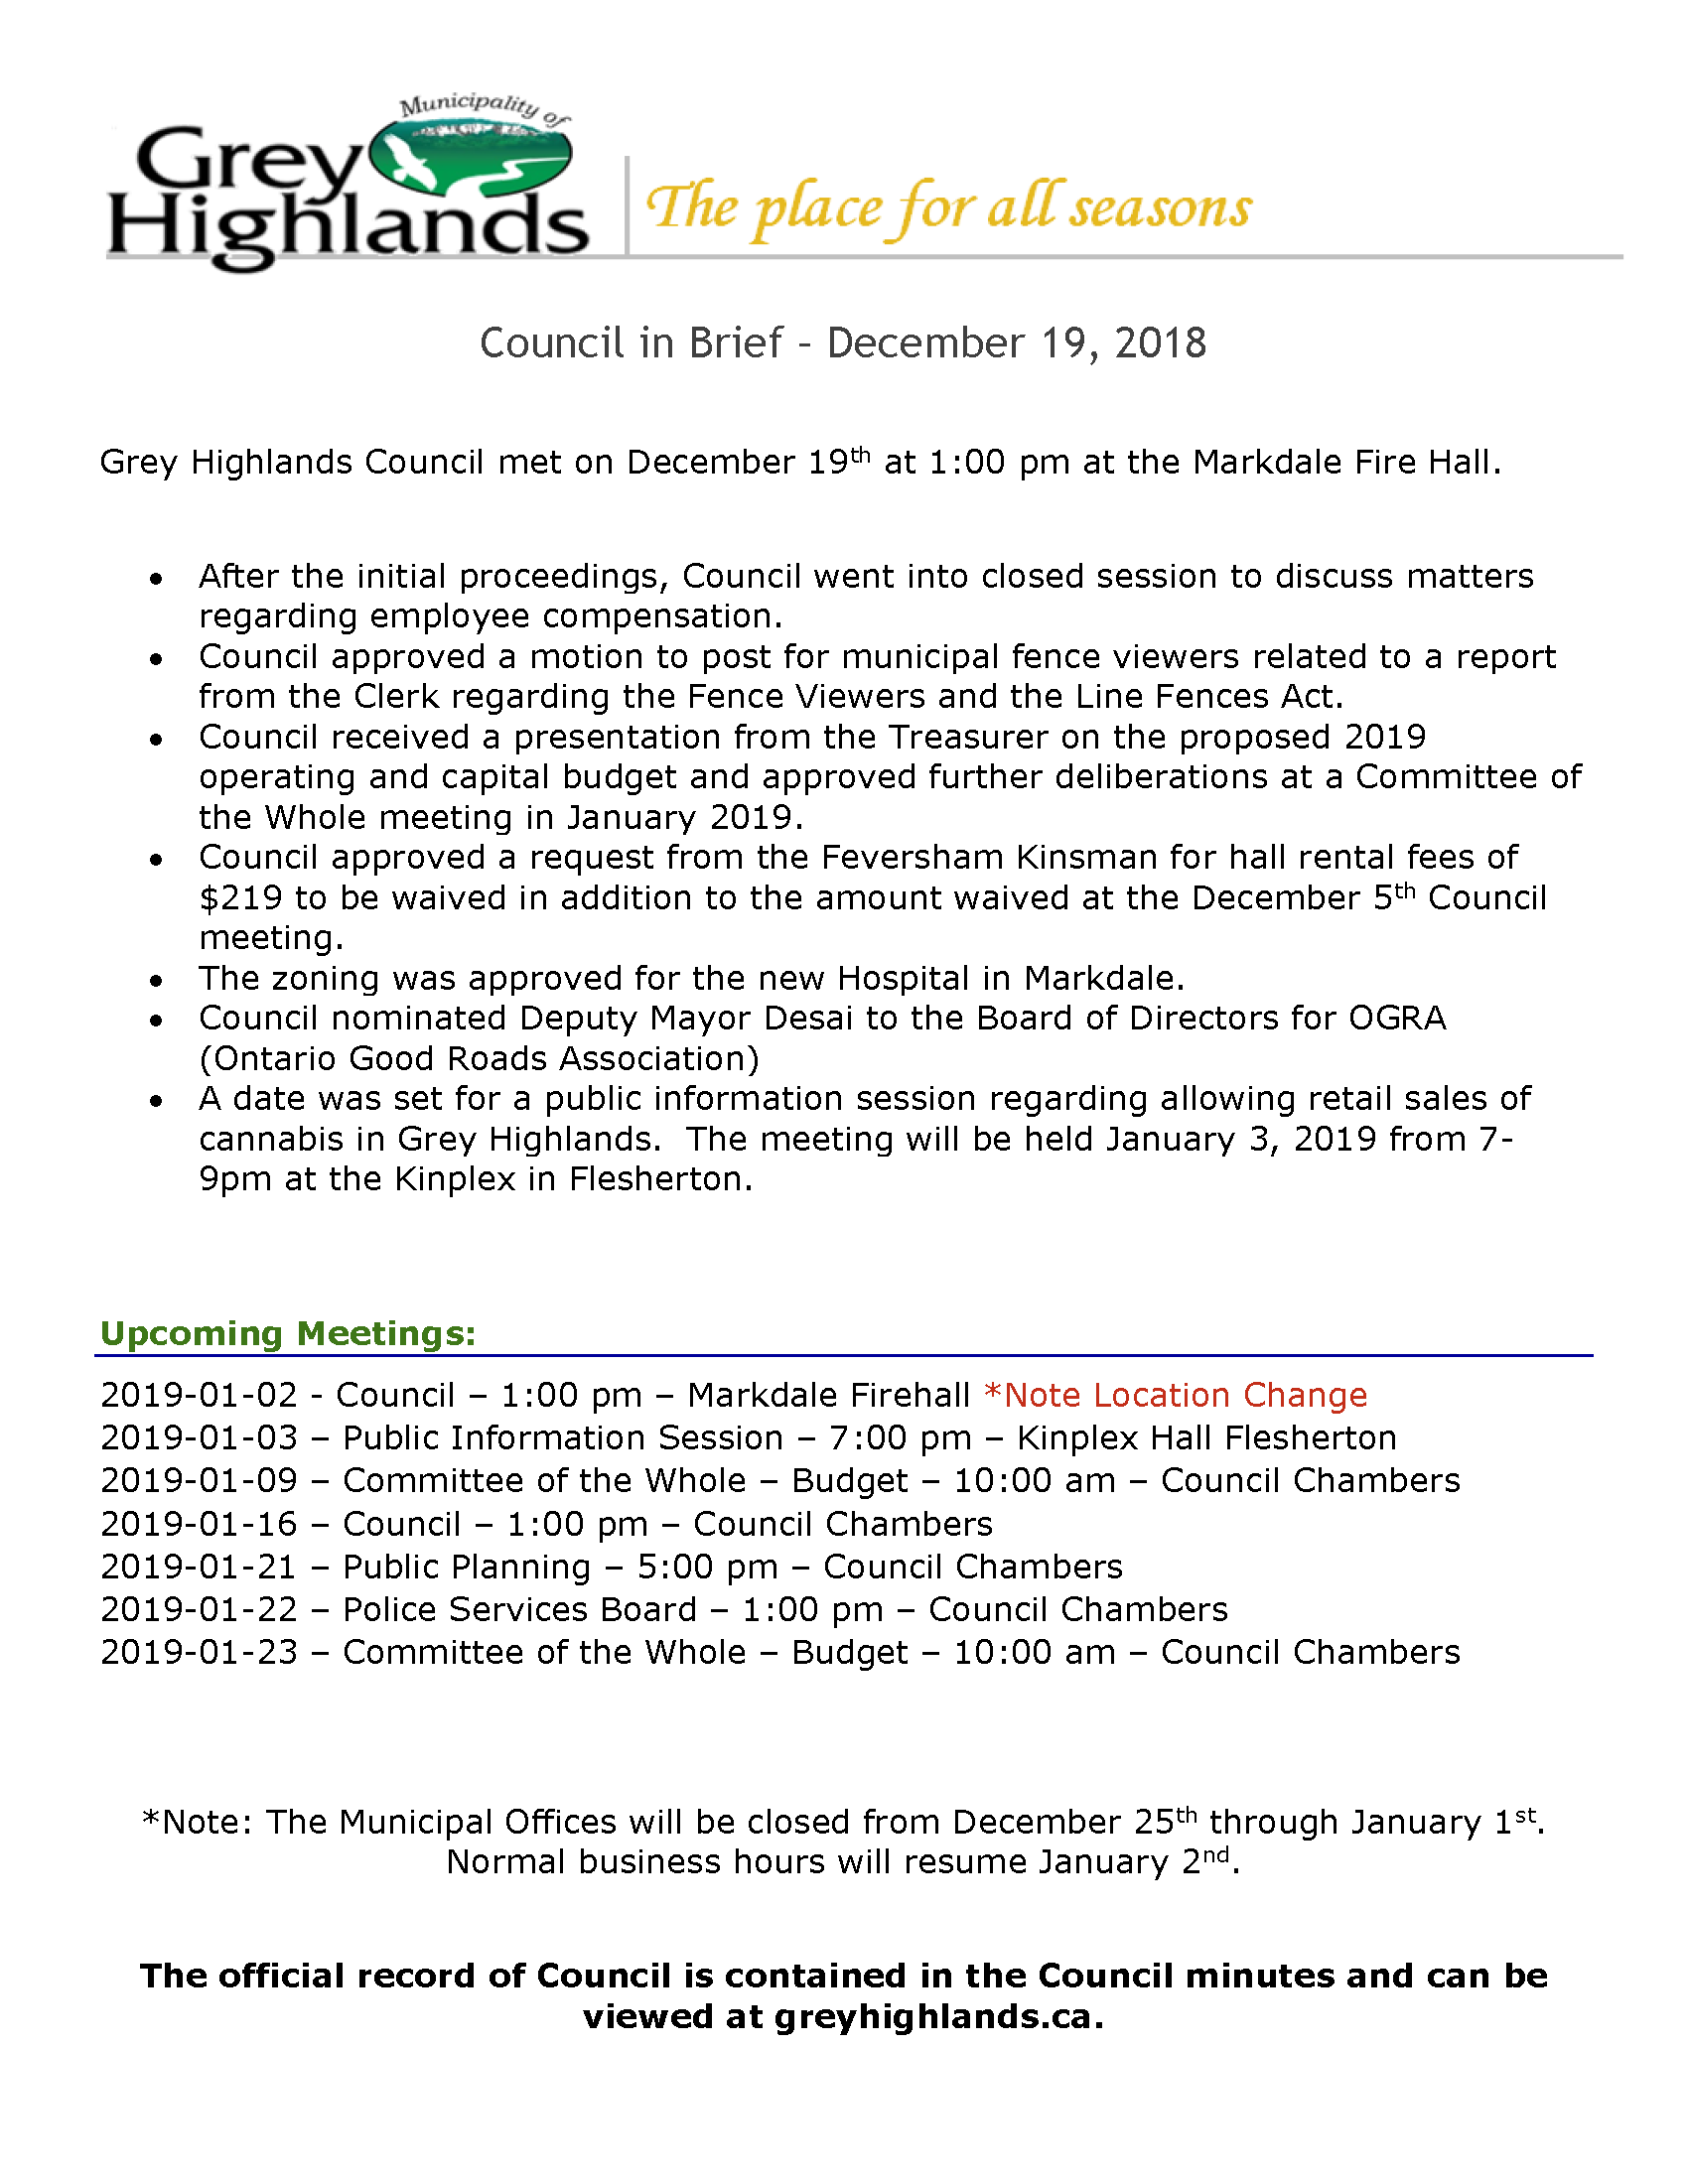 Council Highlights - December 19, 2018